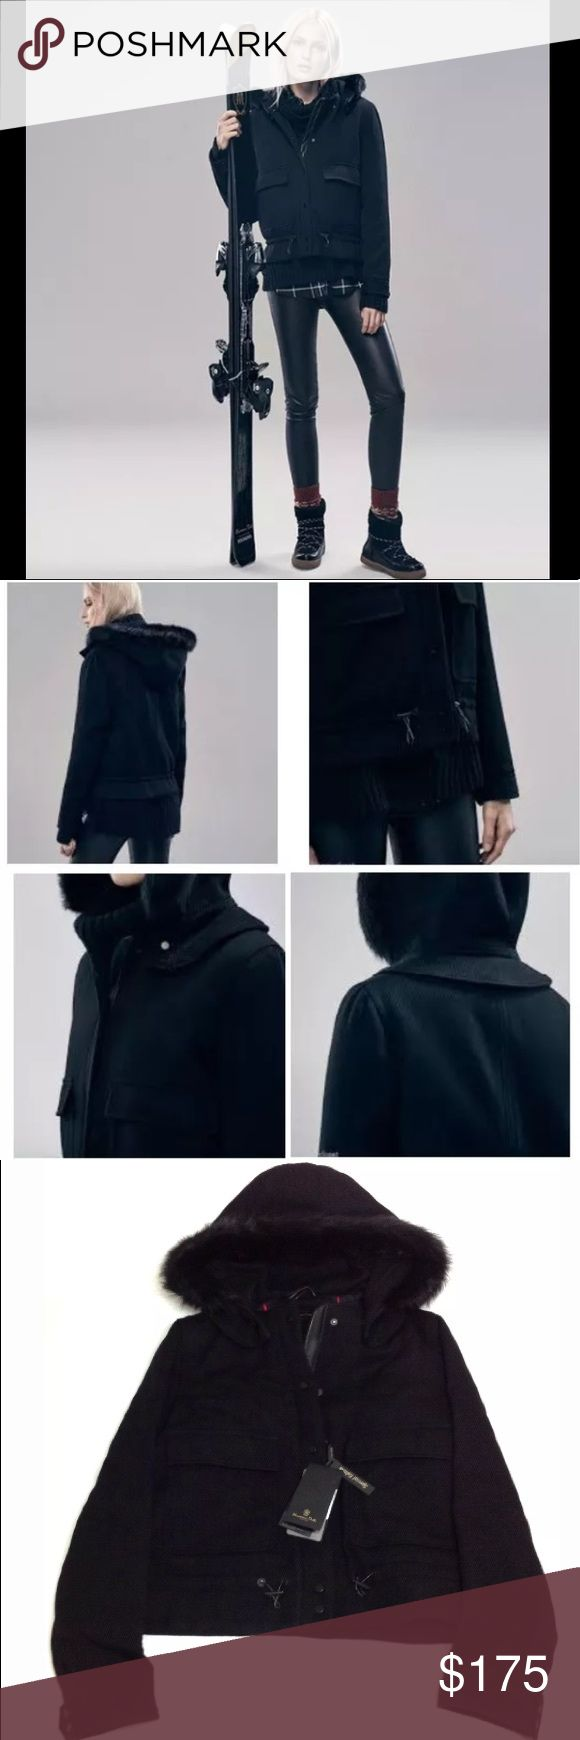 Massimo Dutti Women's Black Bomber Jacket Size L $445 Massimo Dutti Special Edition Black Wool Bomber Jacket Women's Size L.  85% Wool, 15% Polyamide.  Straight cut with hoodie, Tuscan fur trim, front concealed zipper, and press style closure.  Two slit pockets with fold-over flap, buttoned cuffs, made in Portugal.  21 inches chest flat across, 22.5 inches shoulder highest point to hem (approx). NWT. Massimo Dutti Jackets & Coats